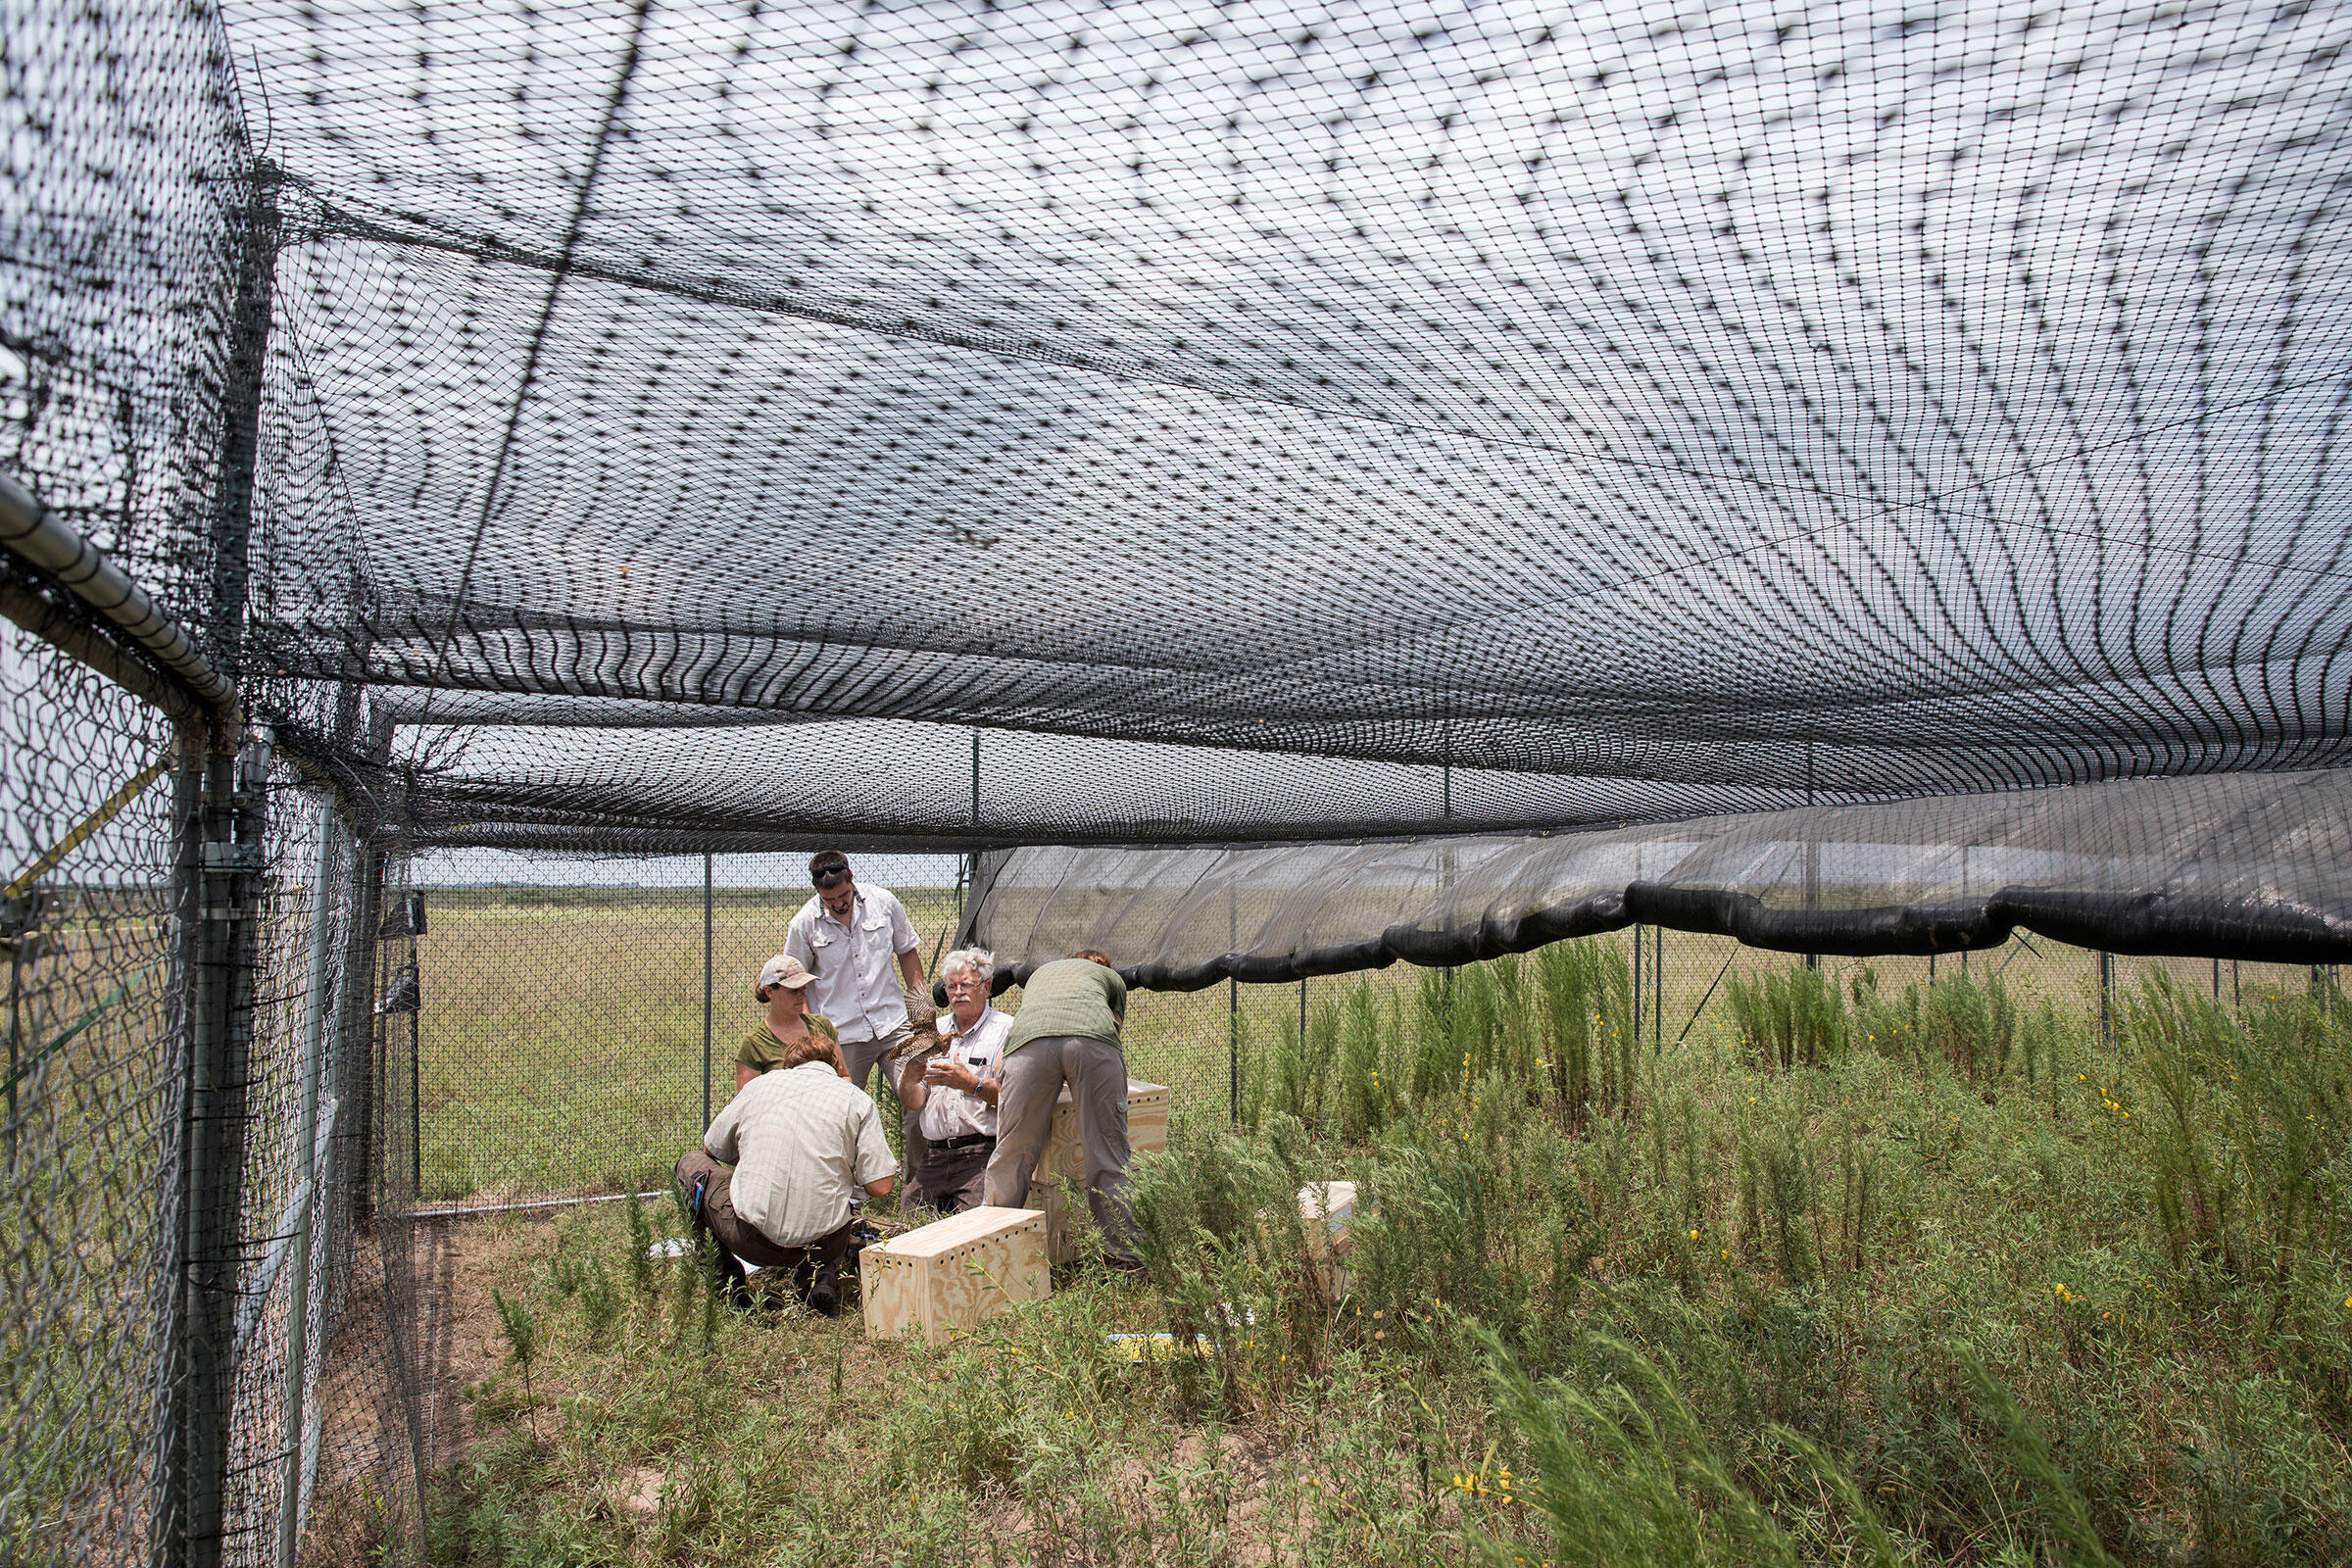 Mike Morrow, an ecologist at Attwater's Prairie-Chicken National Wildlife Refuge, inspects a critically endangered prairie-chicken that has just arrived at the refuge. Scott Dalton